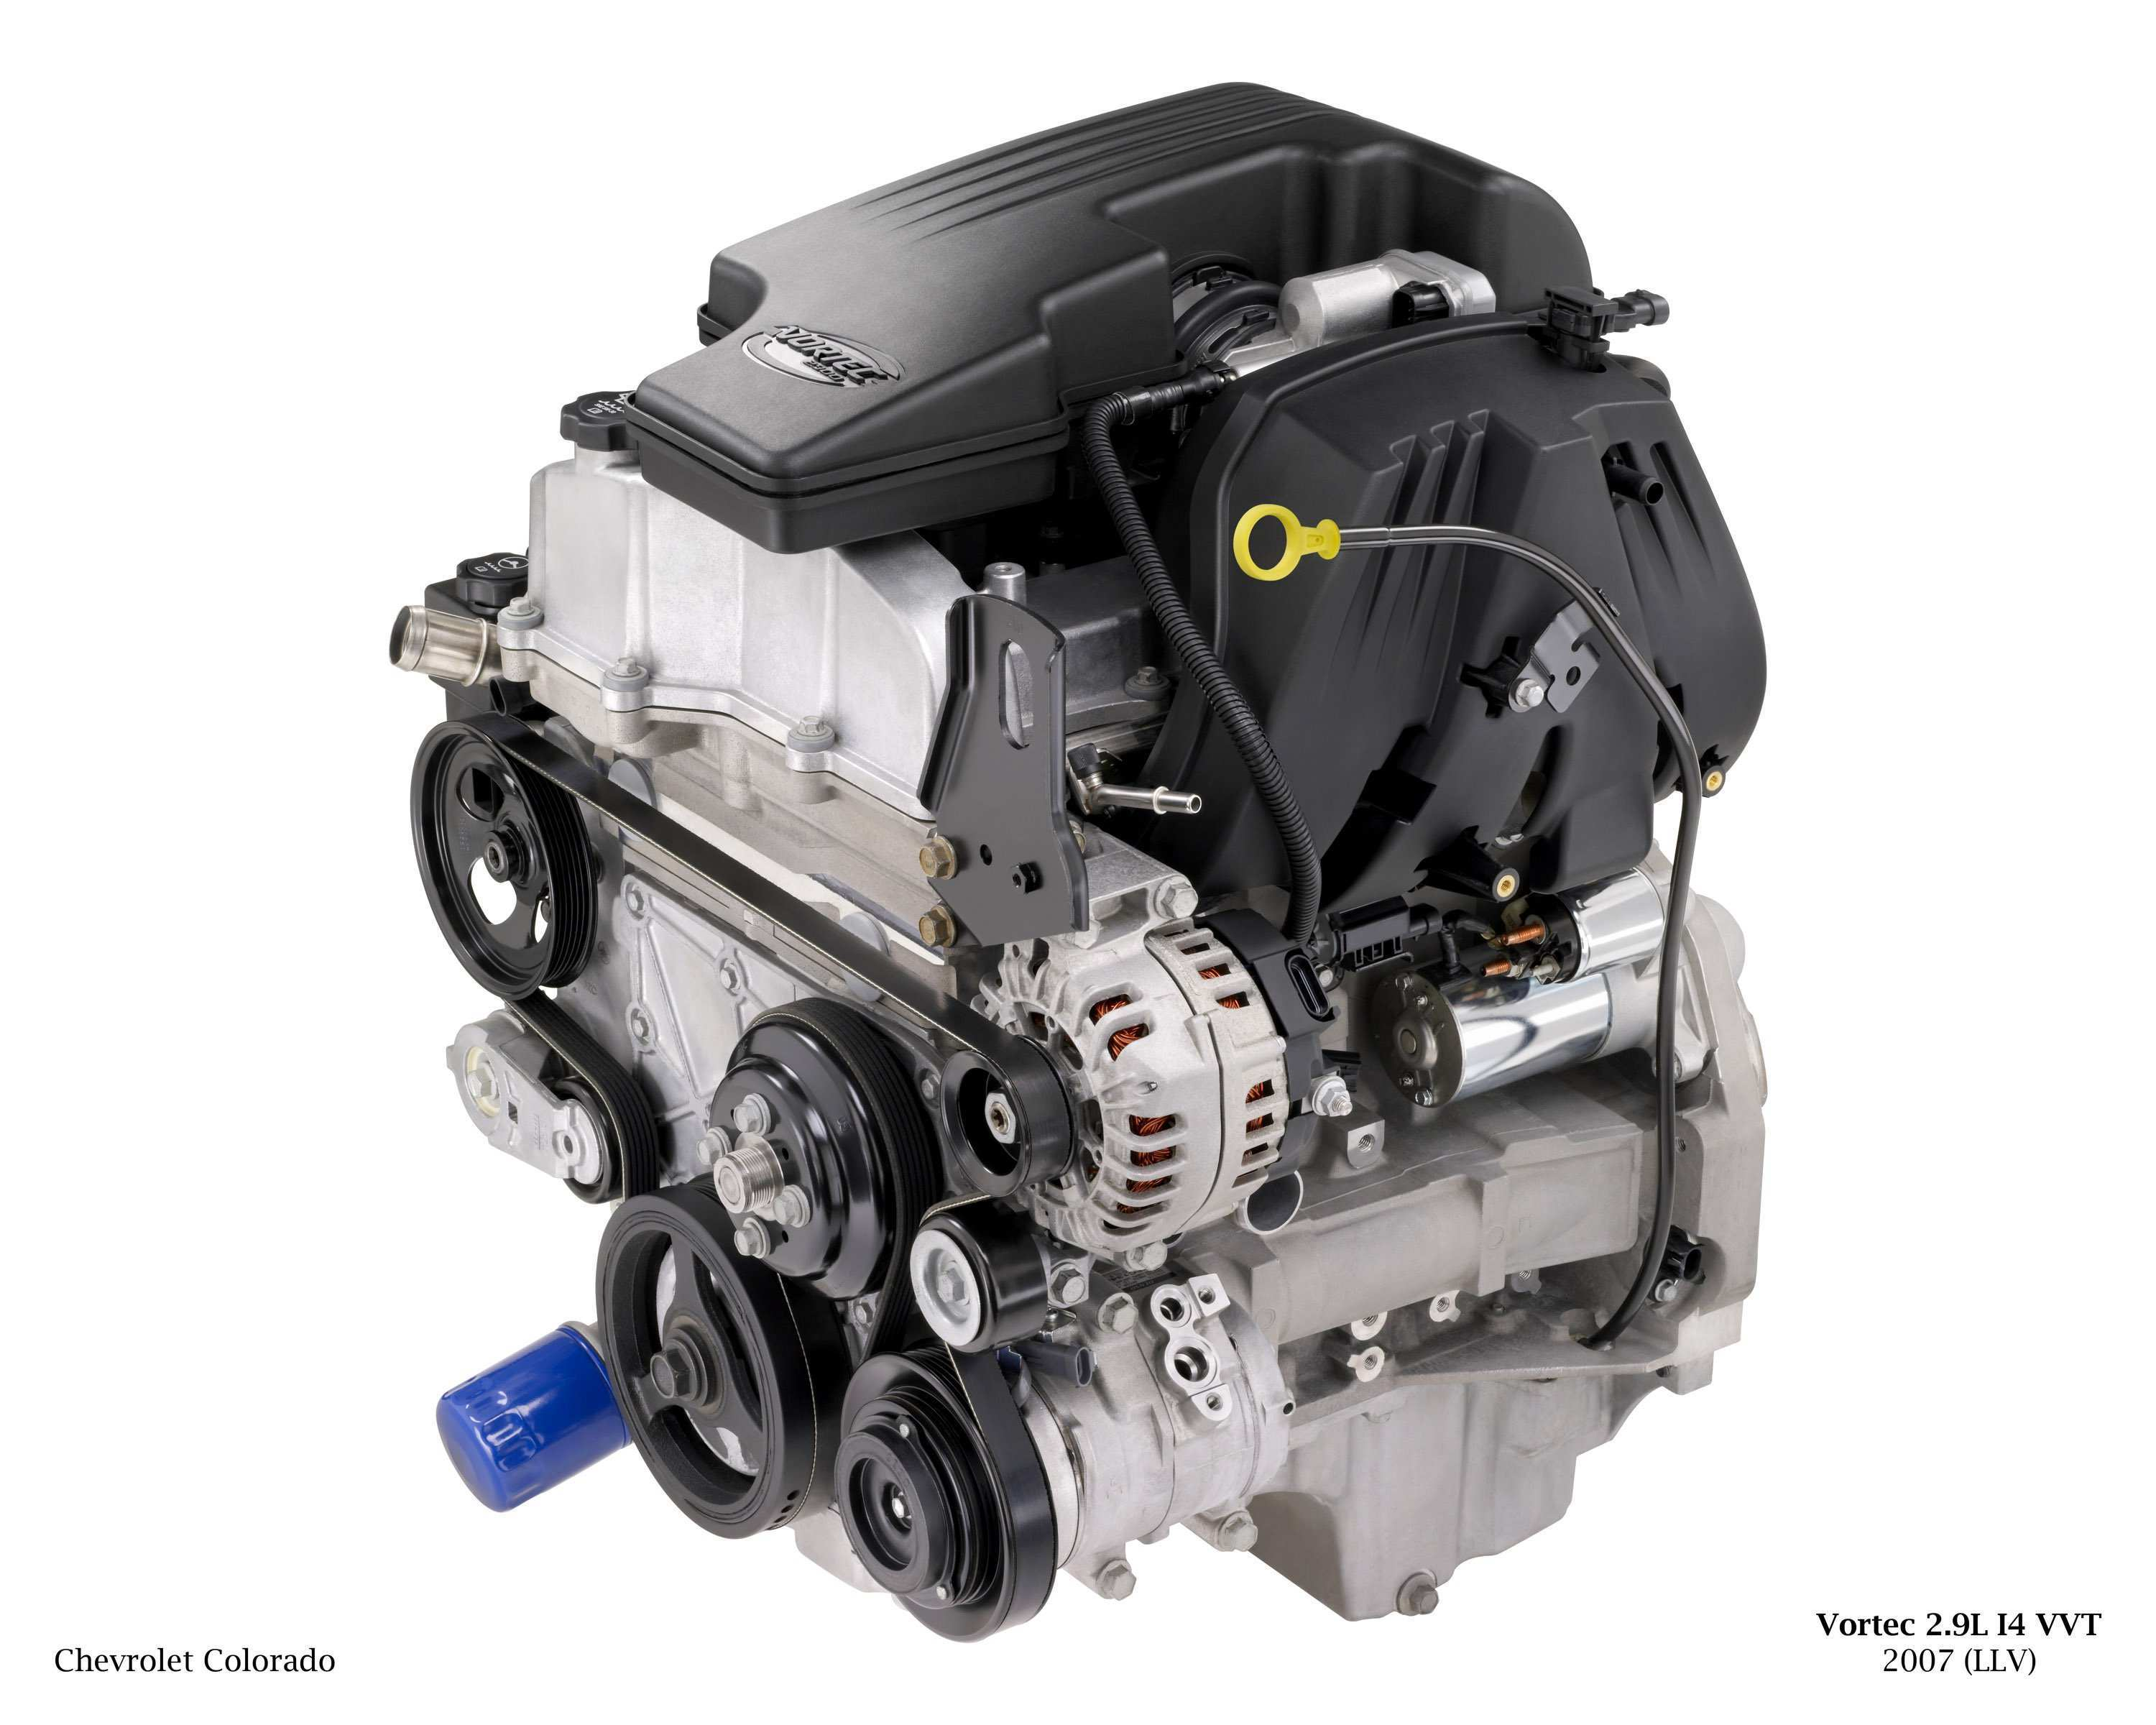 50 Gallery of 2019 Chevrolet 3 0 Diesel Picture for 2019 Chevrolet 3 0 Diesel